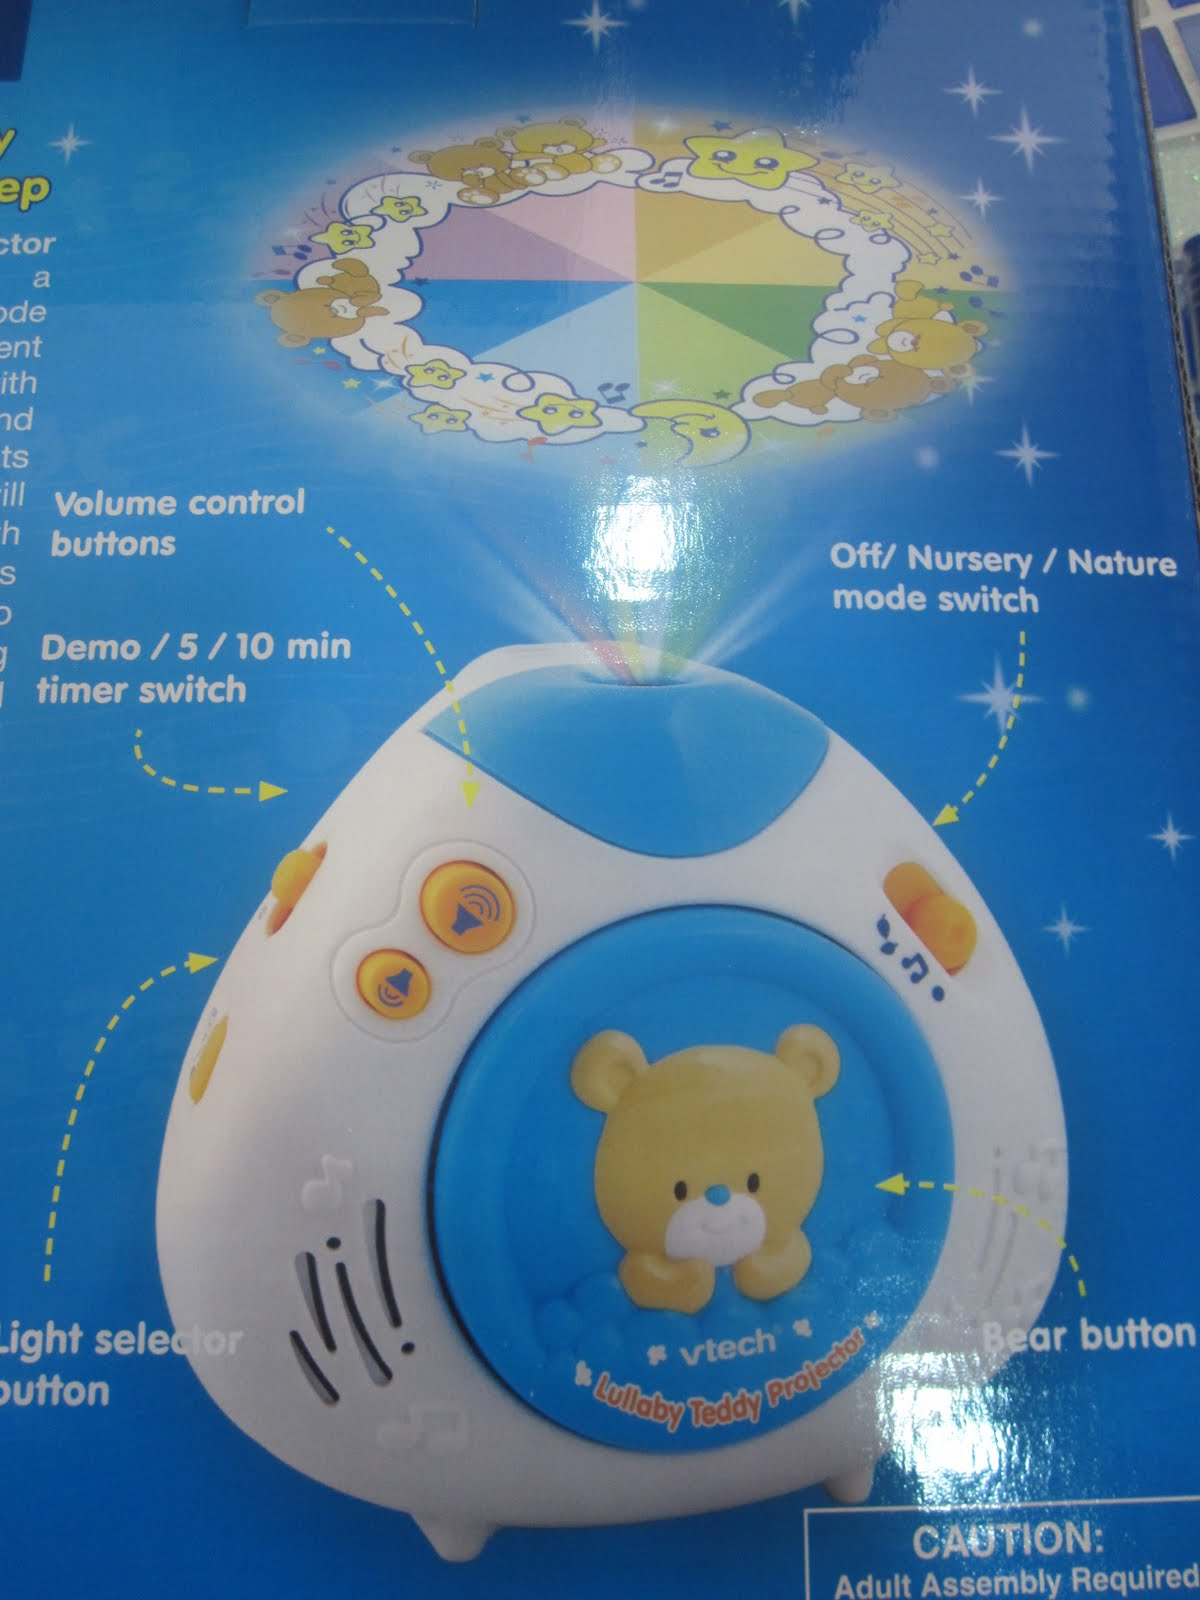 The Little One Boutique Vtech Lullaby Teddy Projector